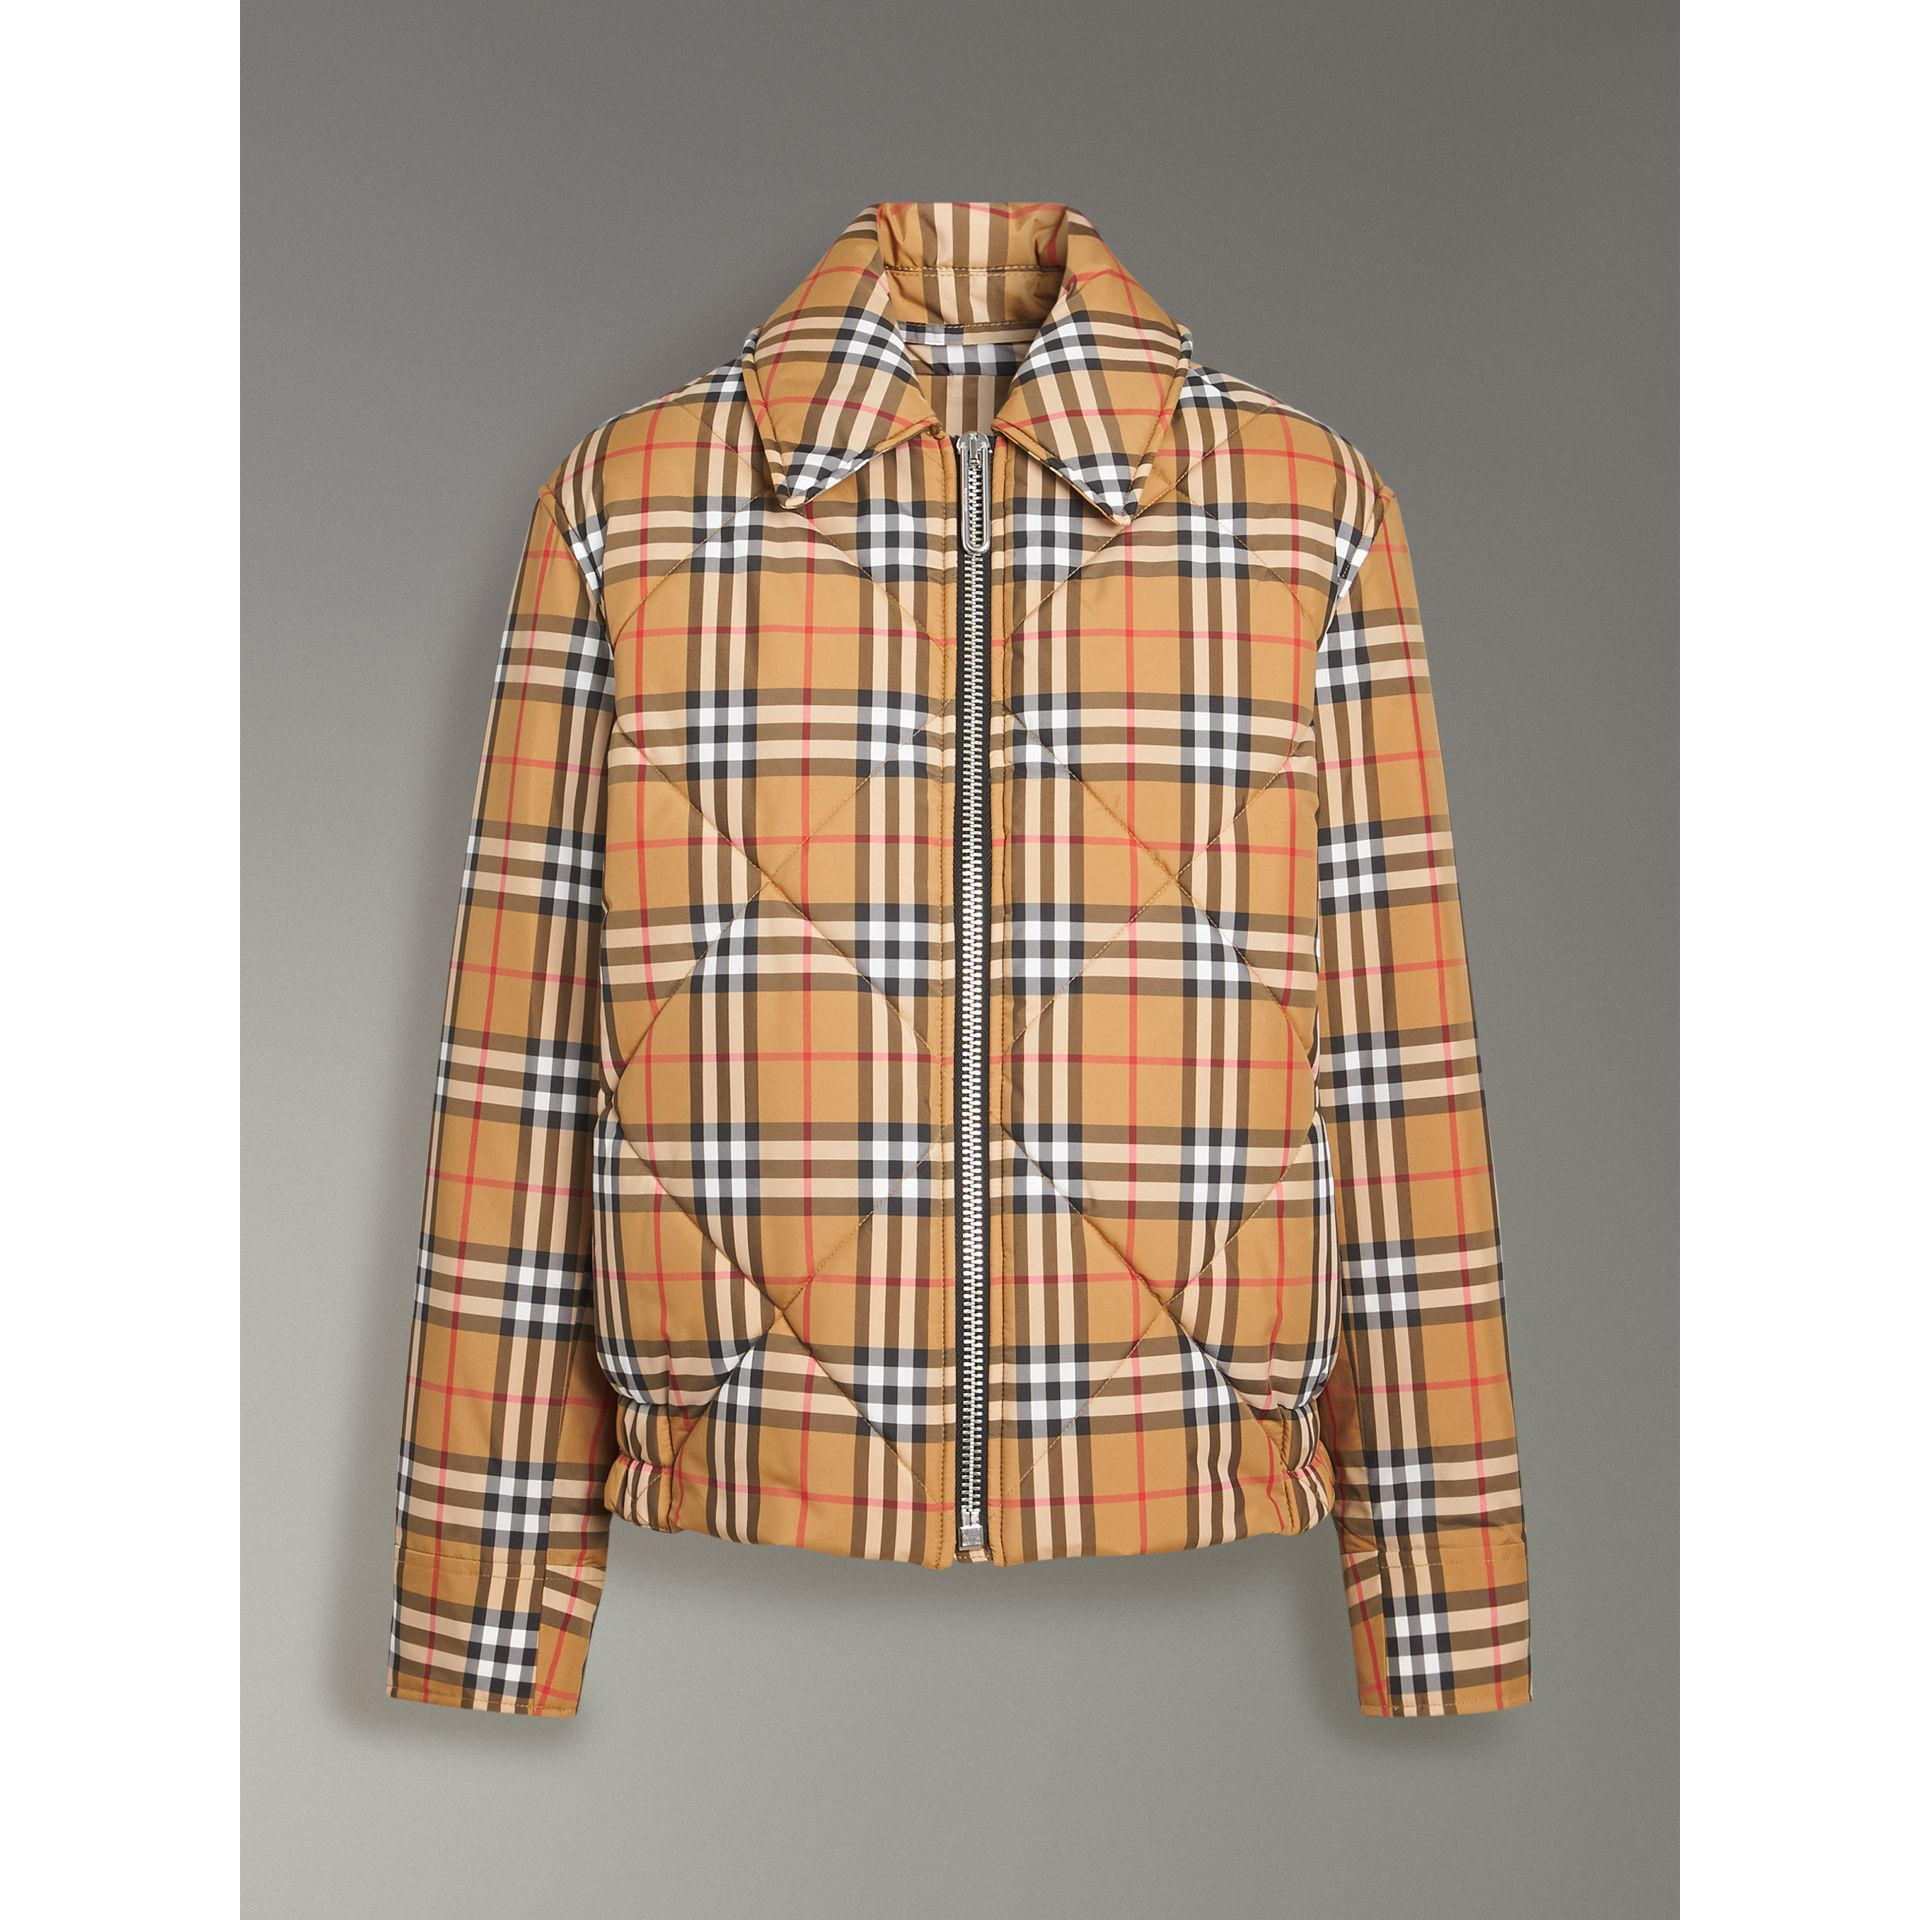 Veste matelassée à motif Vintage check (Jaune Antique) - Femme | Burberry - photo de la galerie 3